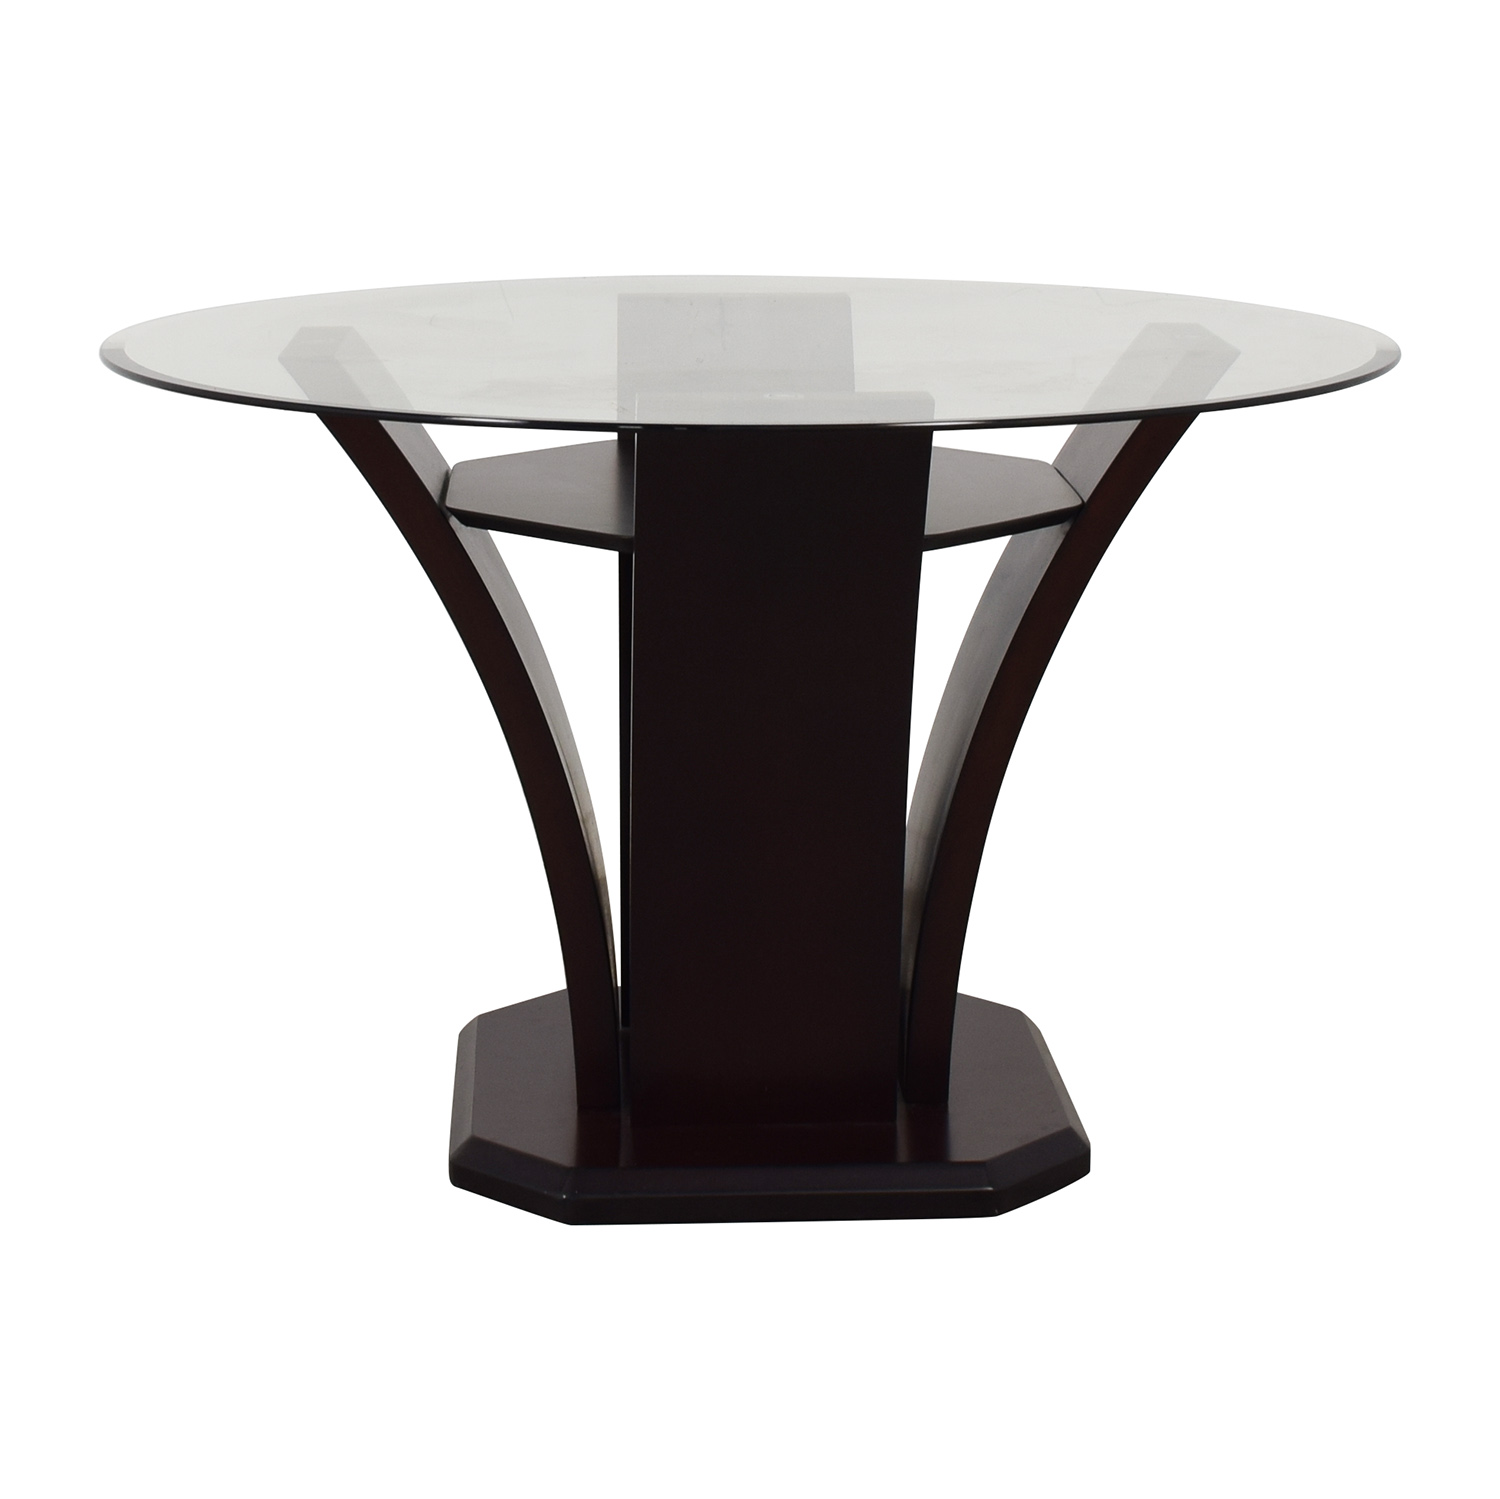 Raymour & Flanigan Raymour & Flanigan Venice Dining Table dark brown